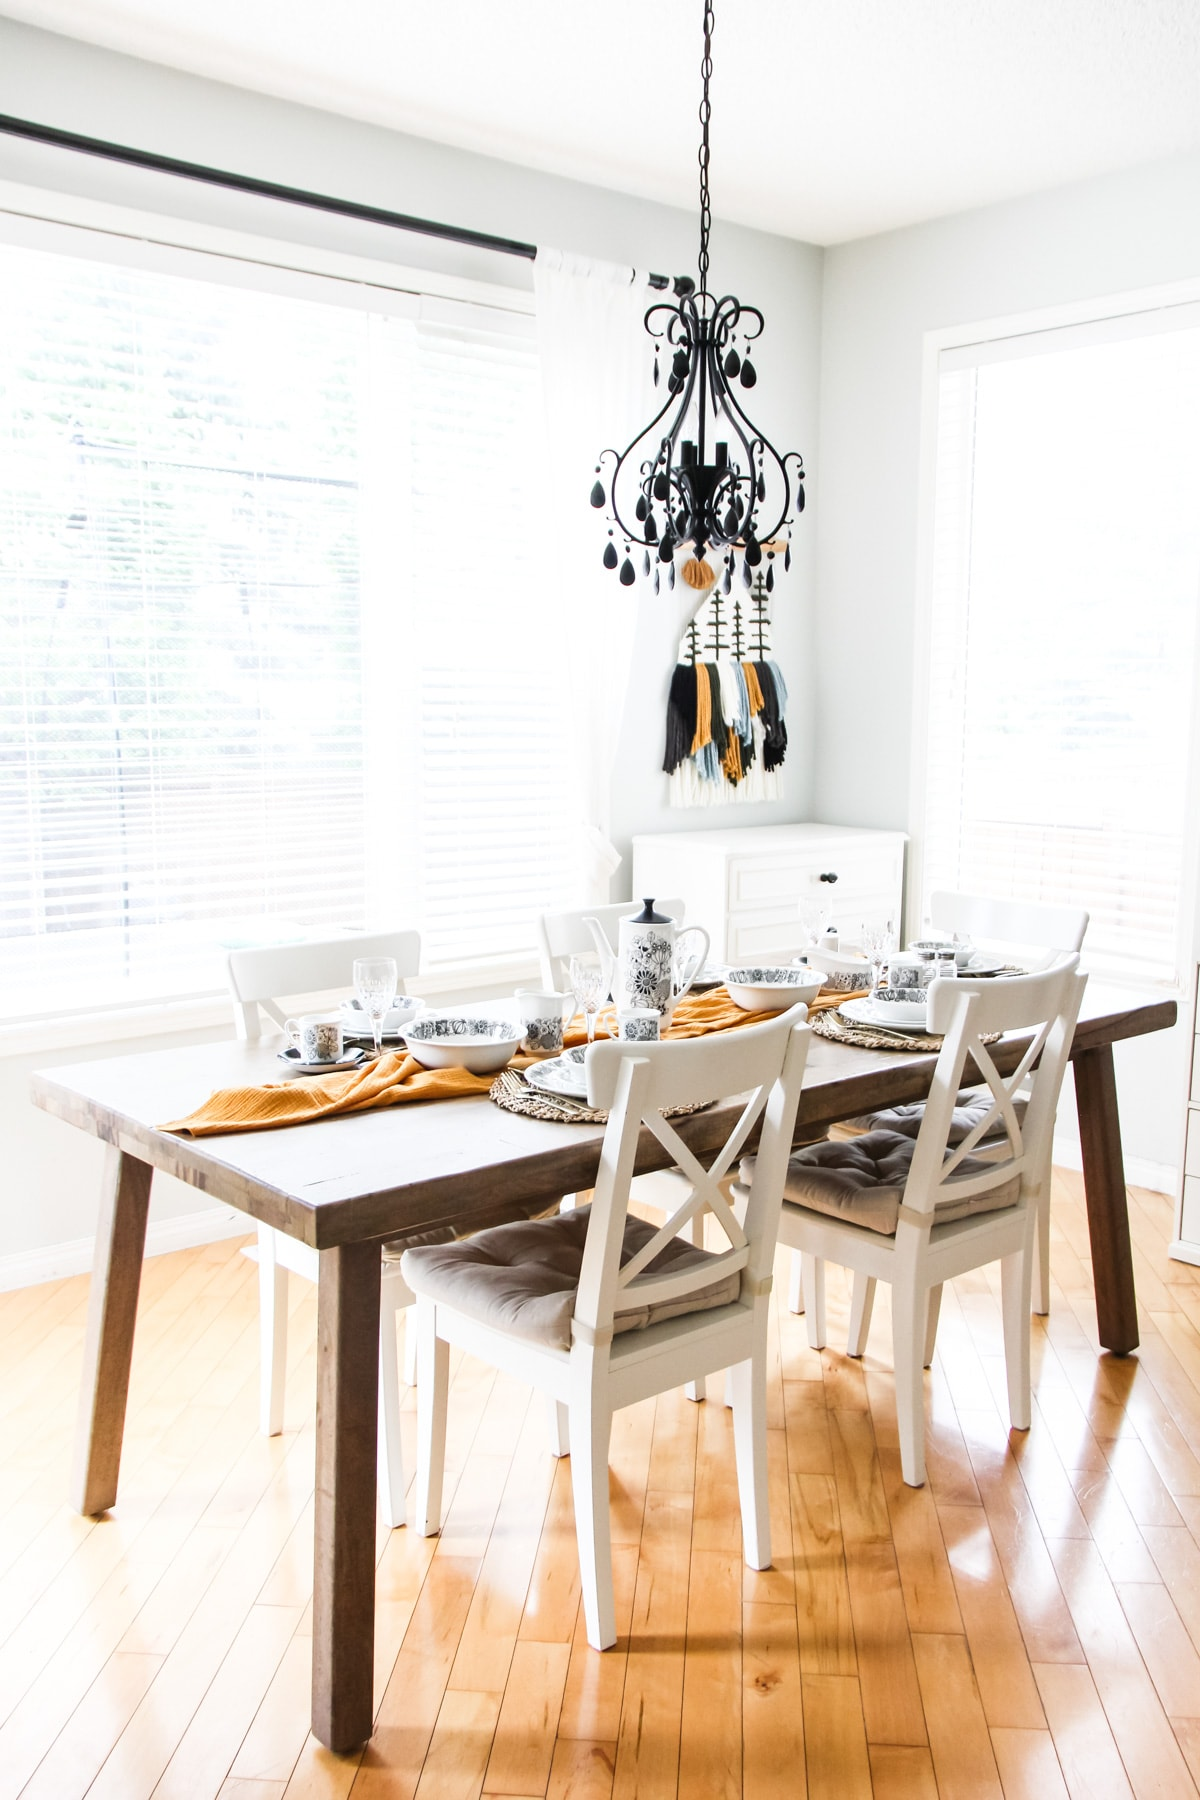 a wooden table with white chairs is set for dining. a gold runner runs down the middle of the table. the settings are black and white dishes. from the ceilings hangs a black chandelier